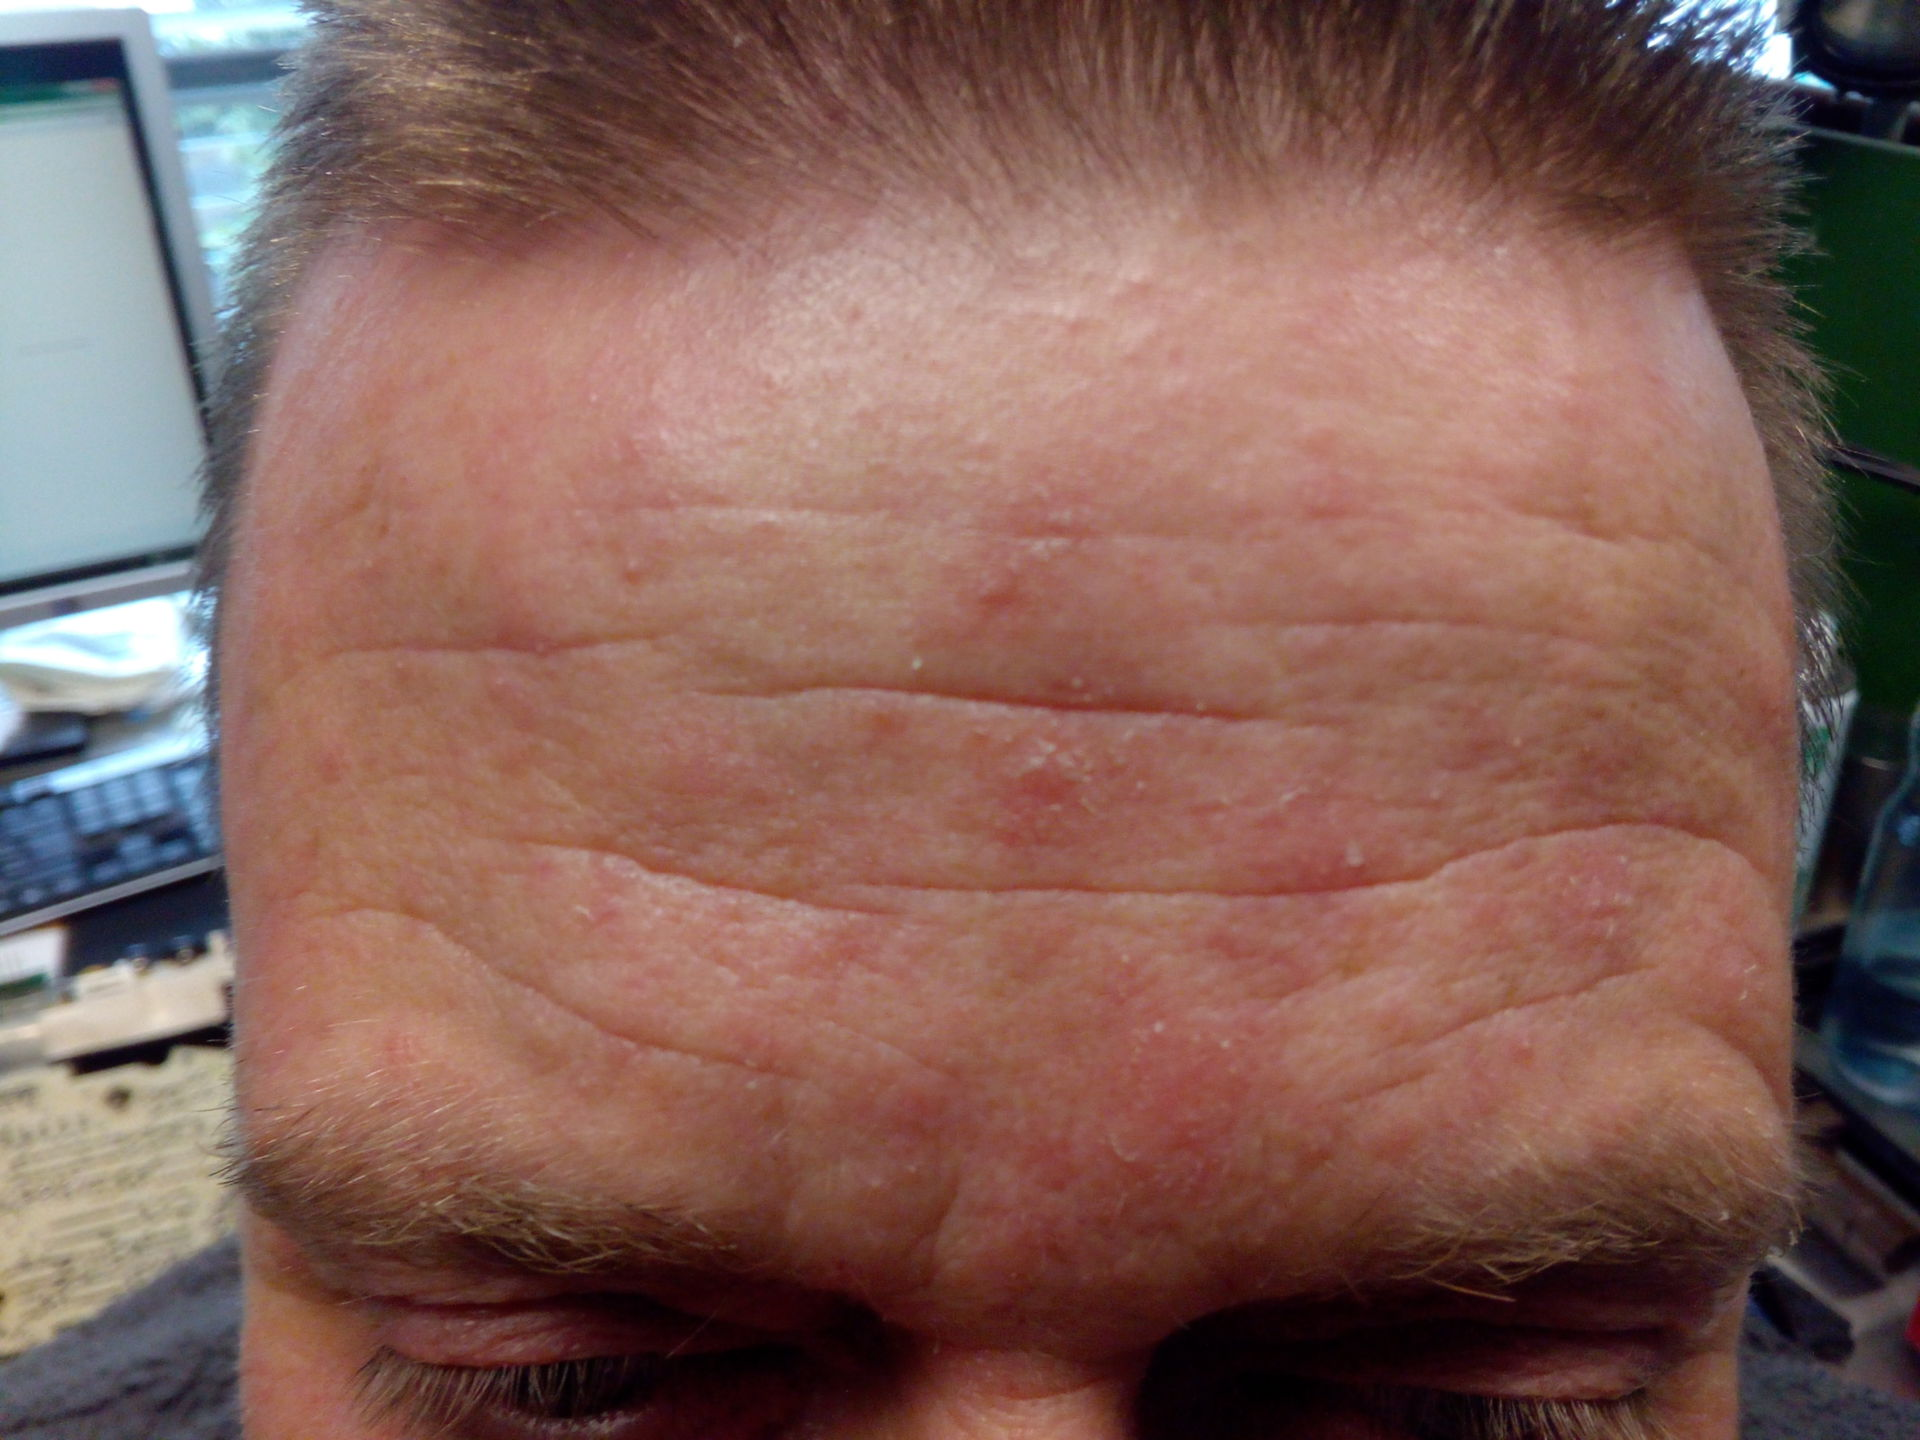 Drug eruption of Amoxicillin and combination on forehead